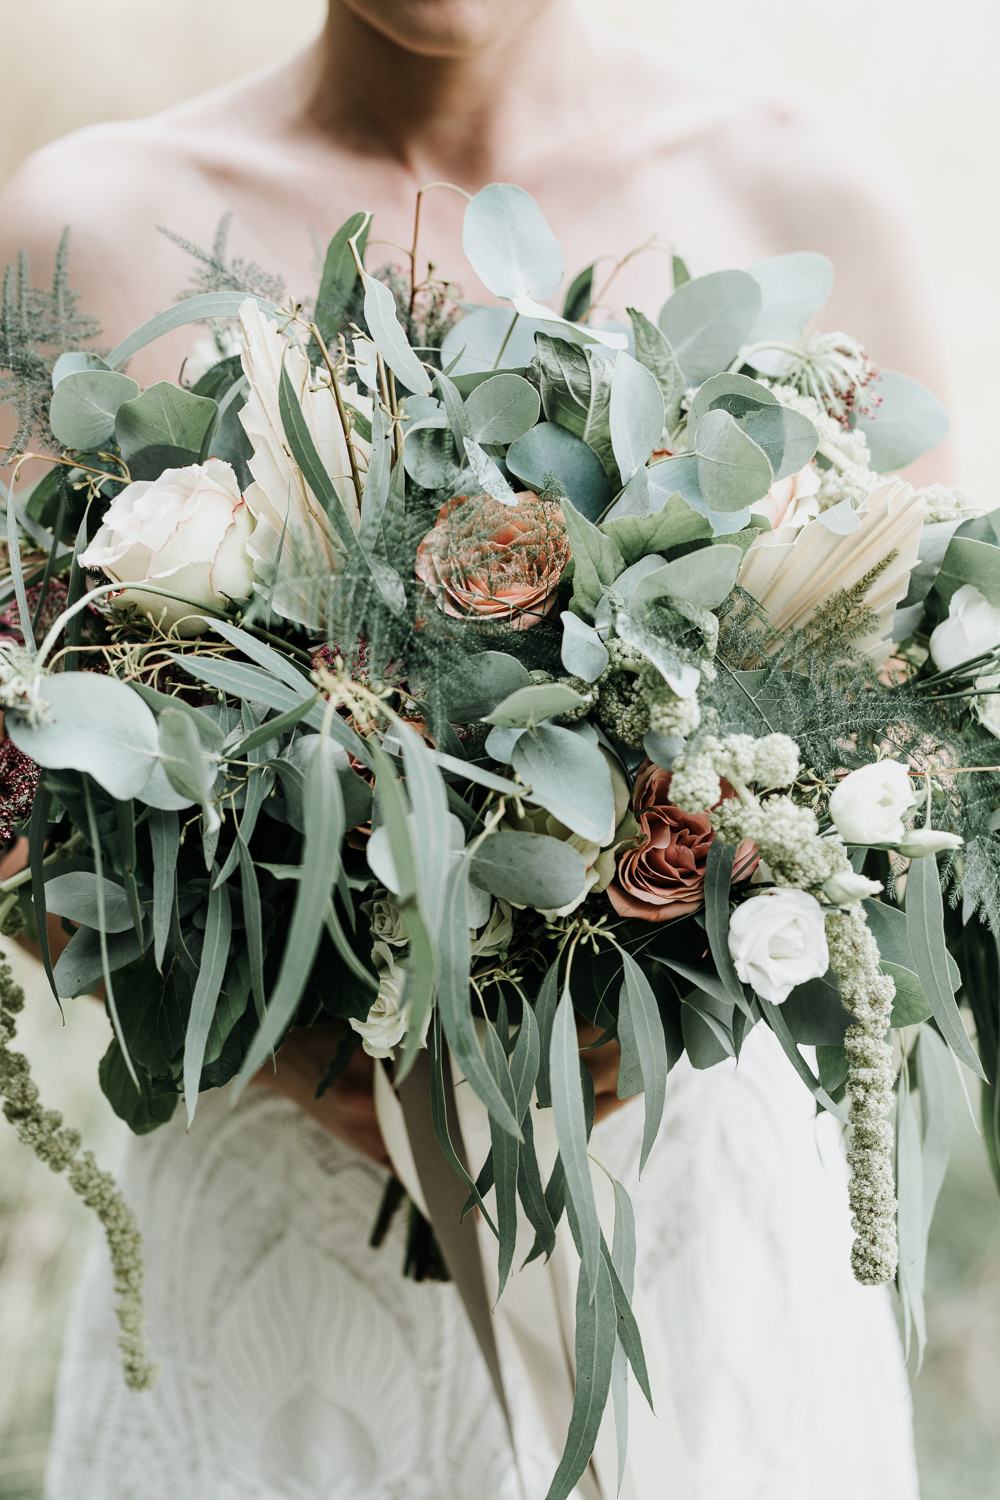 Micro Wedding Ideas Gareth J Photography Bride Bridal Bouquet Flowers Rose Lisianthus Ammi Amaranthus Astrantia Eucalyptus Birch Asparagus Dried Palm Spears